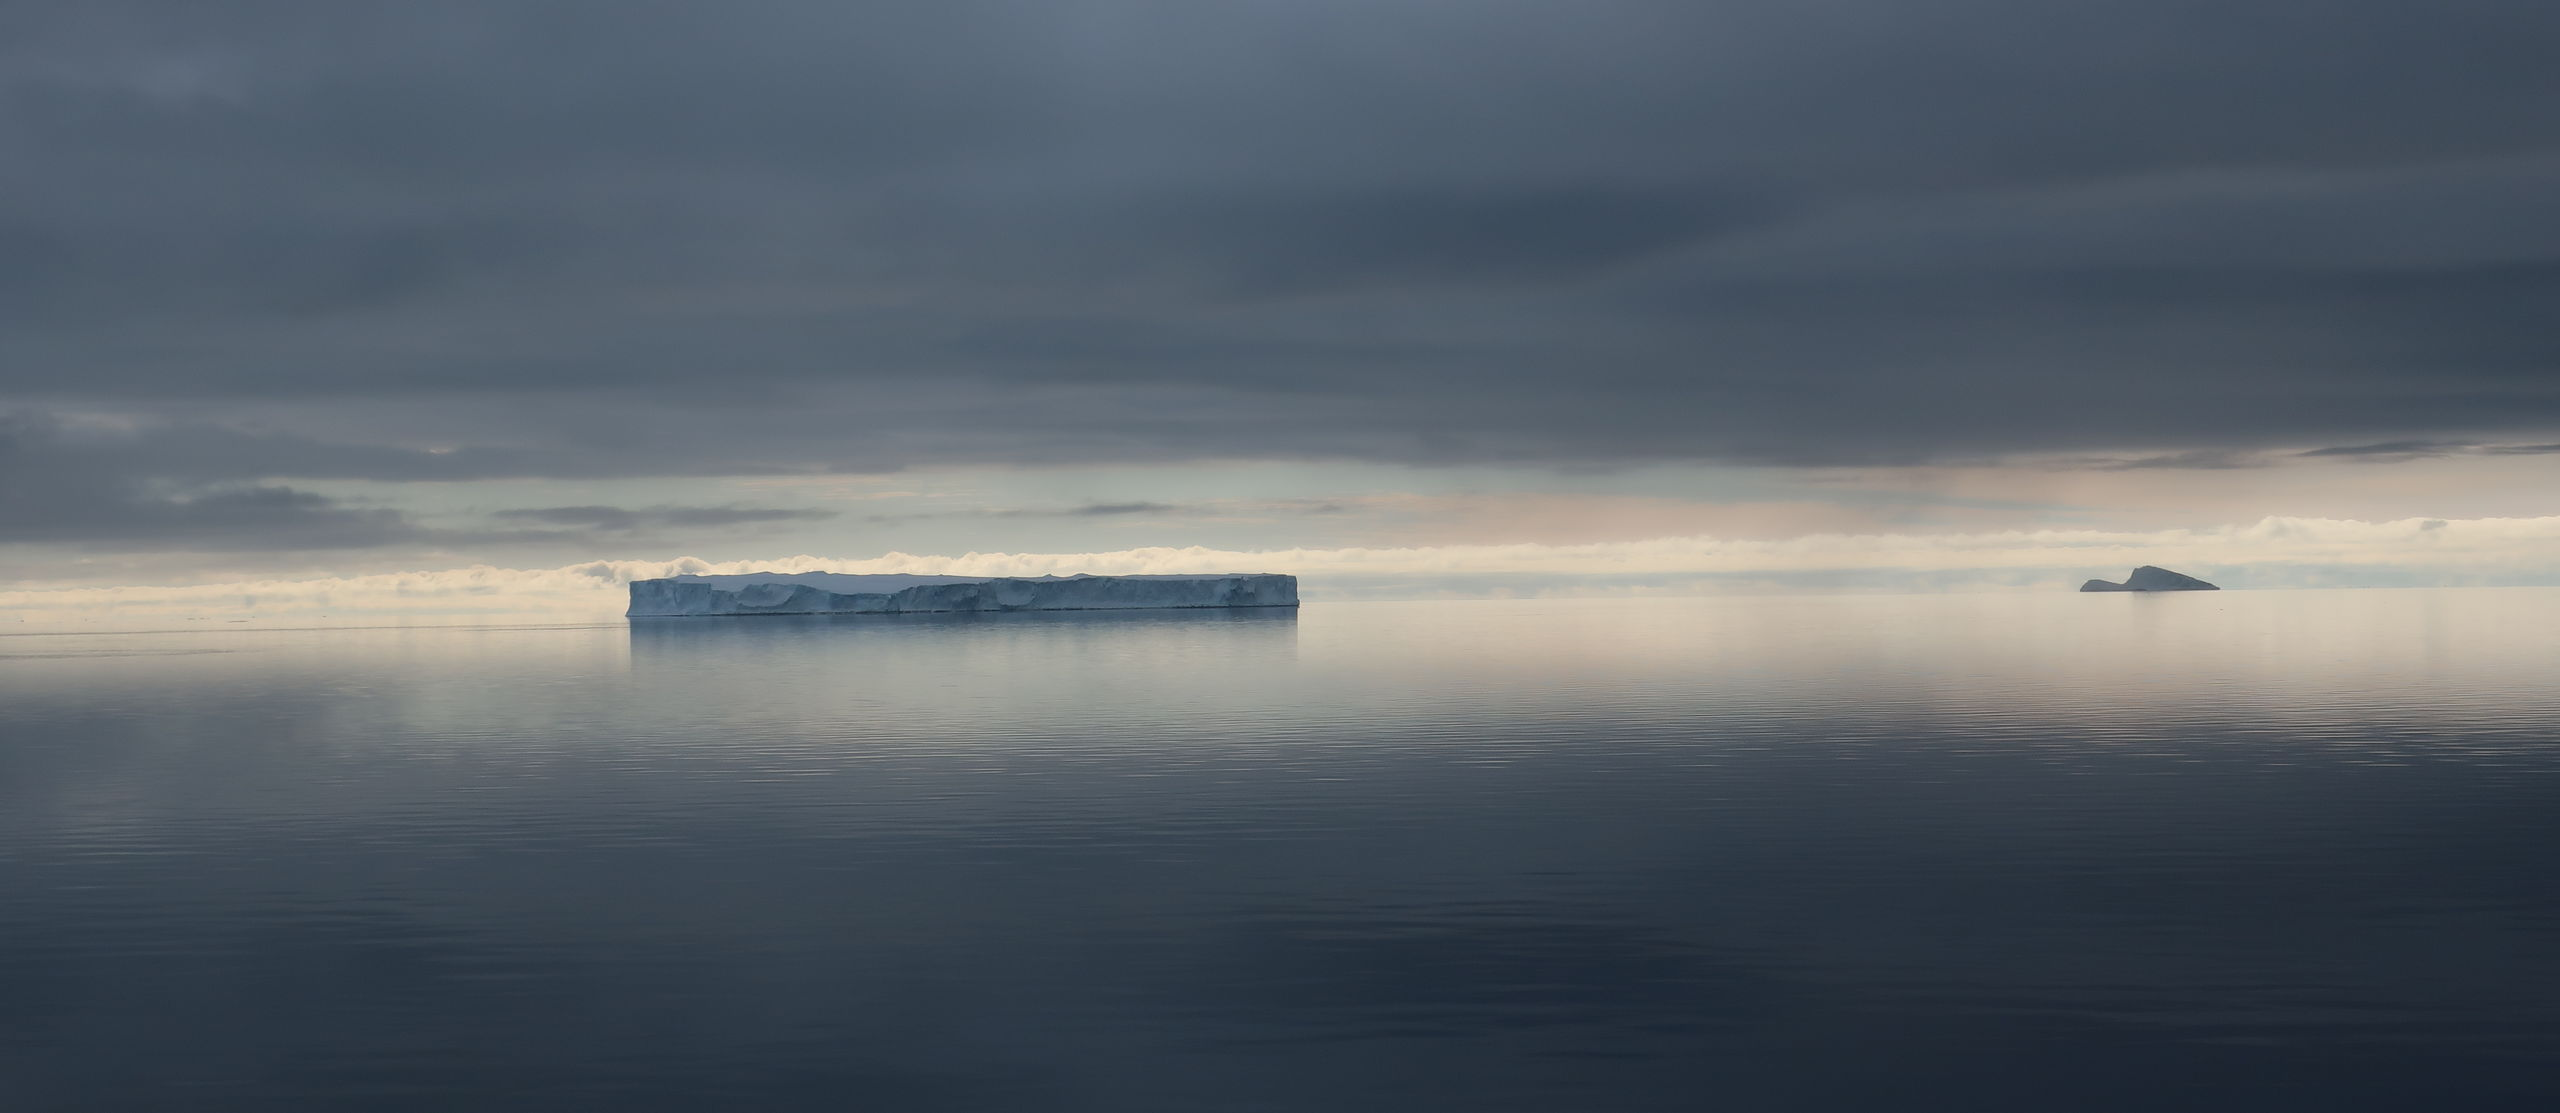 A cloudy day in the Antarctic.